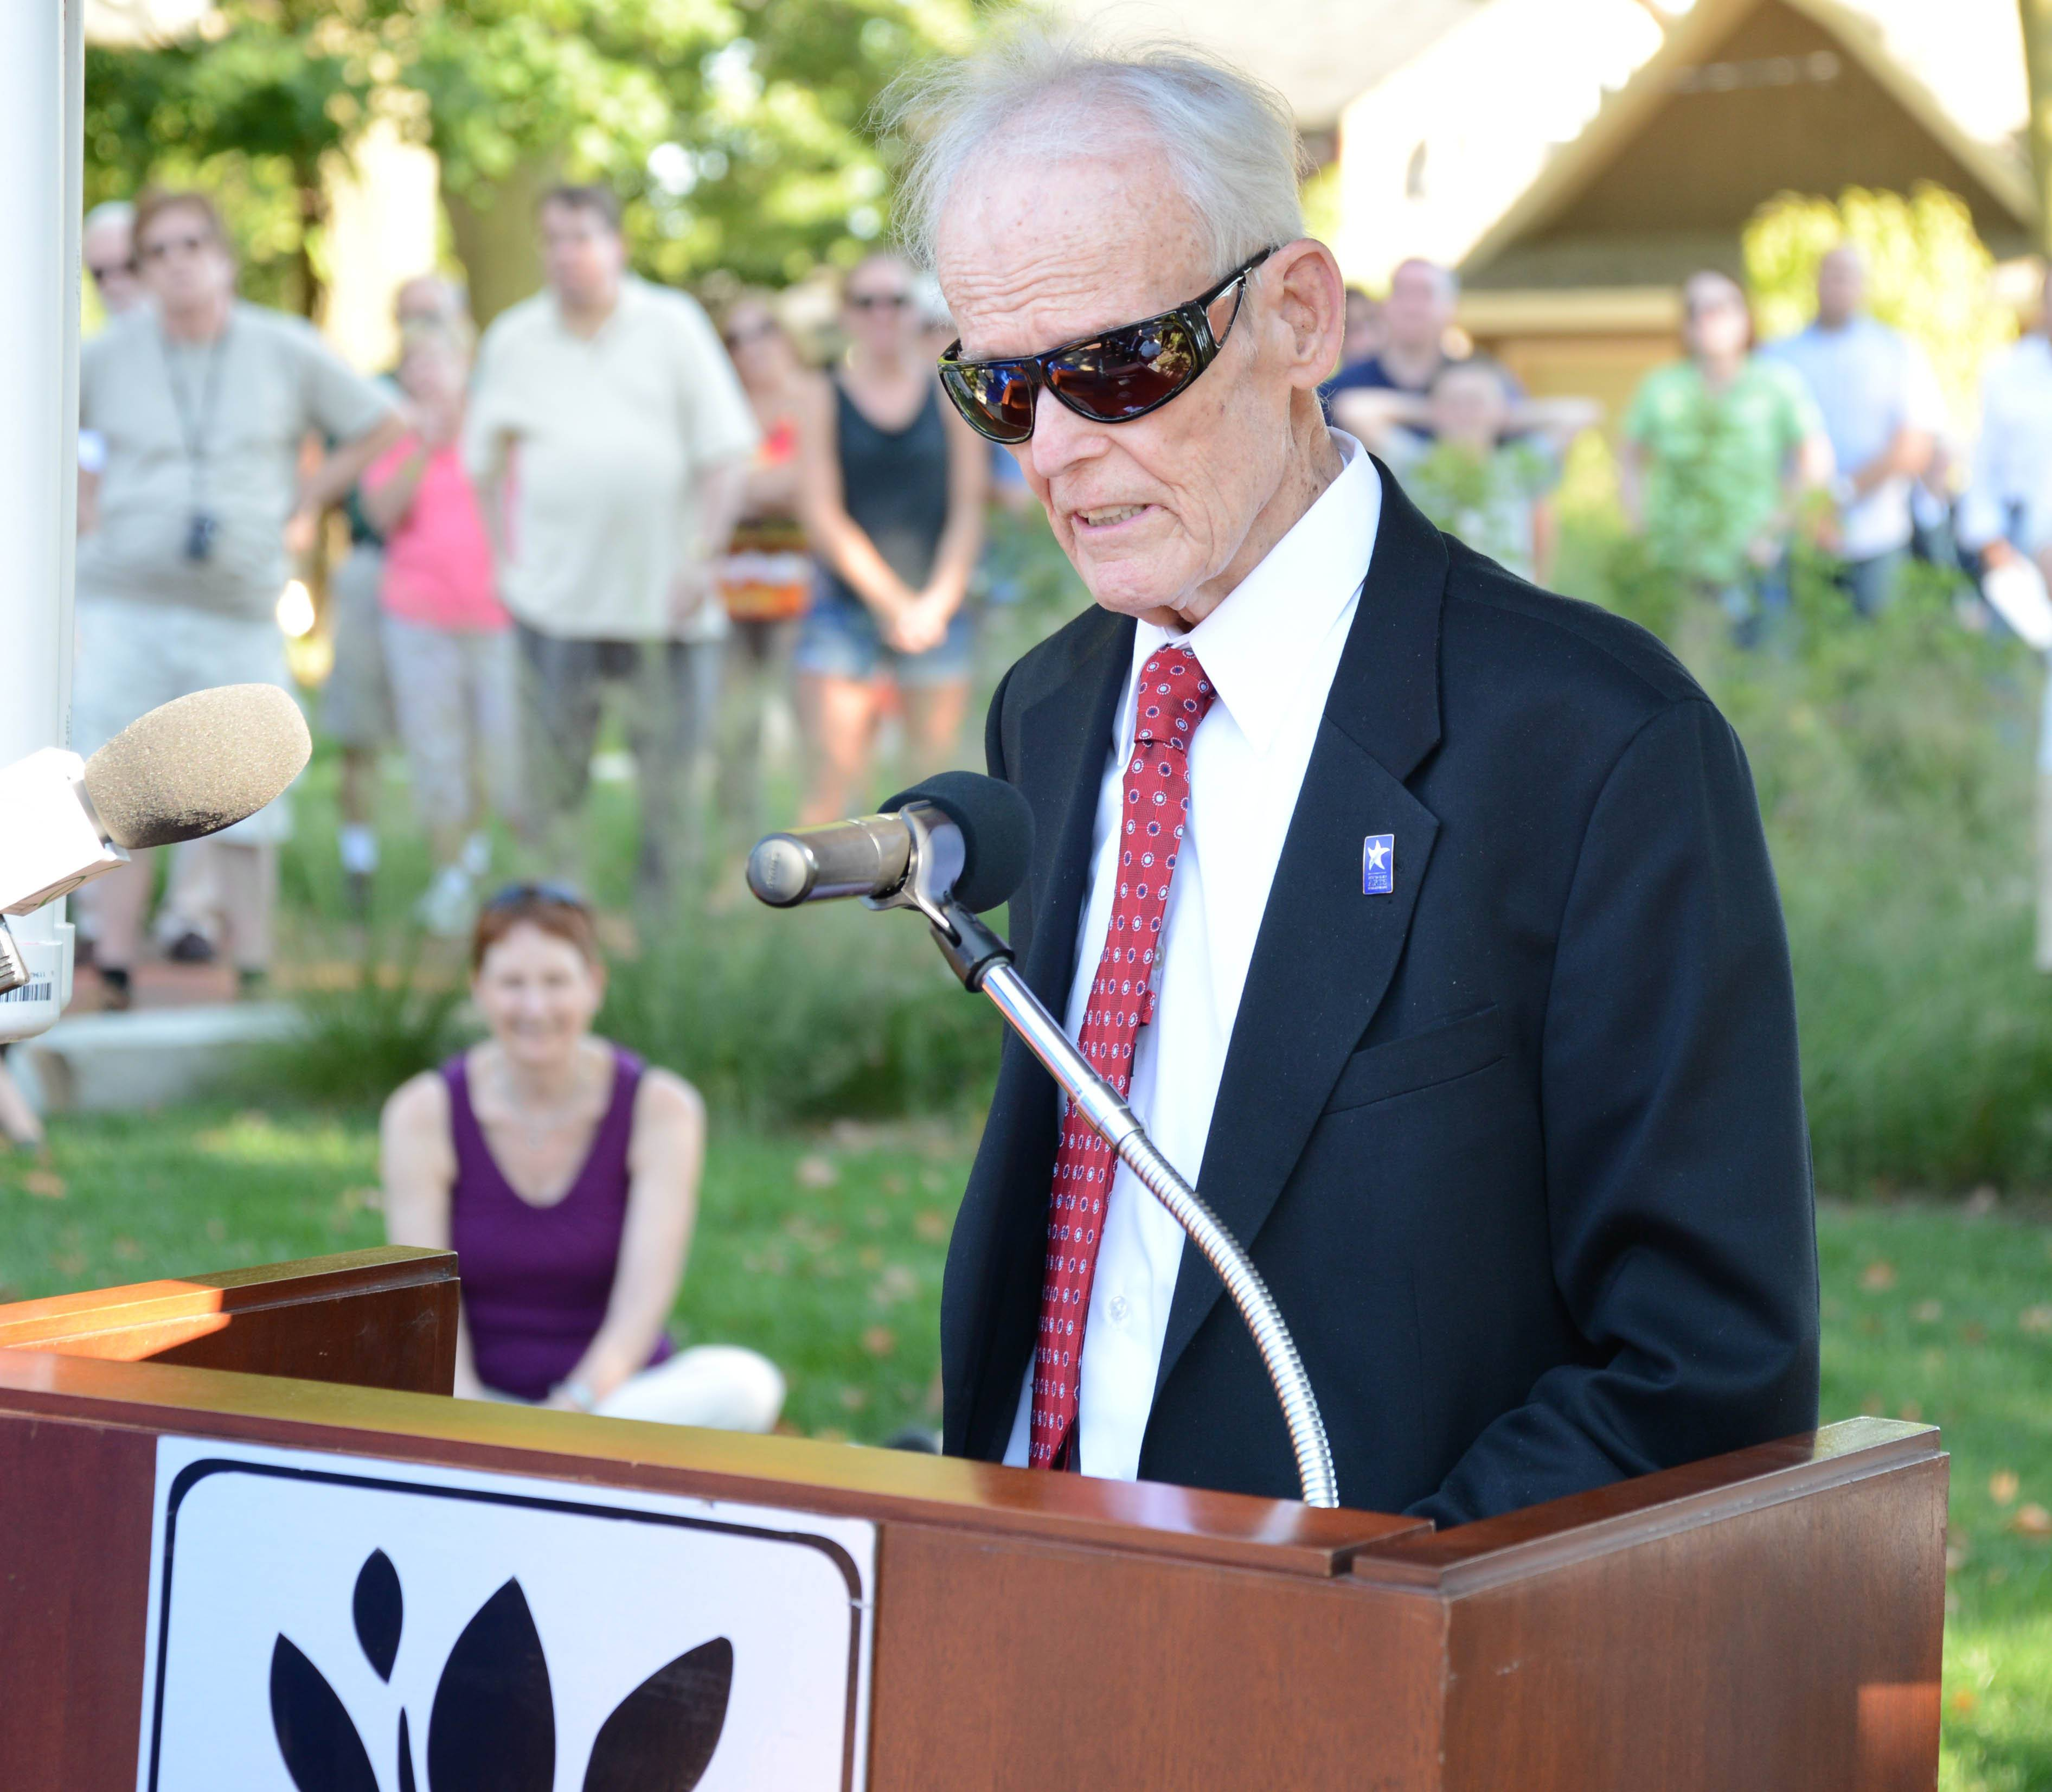 Naperville artist Dick Locher speaks in 2013 about the sculpture he created of town founder Joseph Naper. The piece was dedicated four years after Locher completed a sculpture of Dick Tracy, the comic strip detective he drew for years.